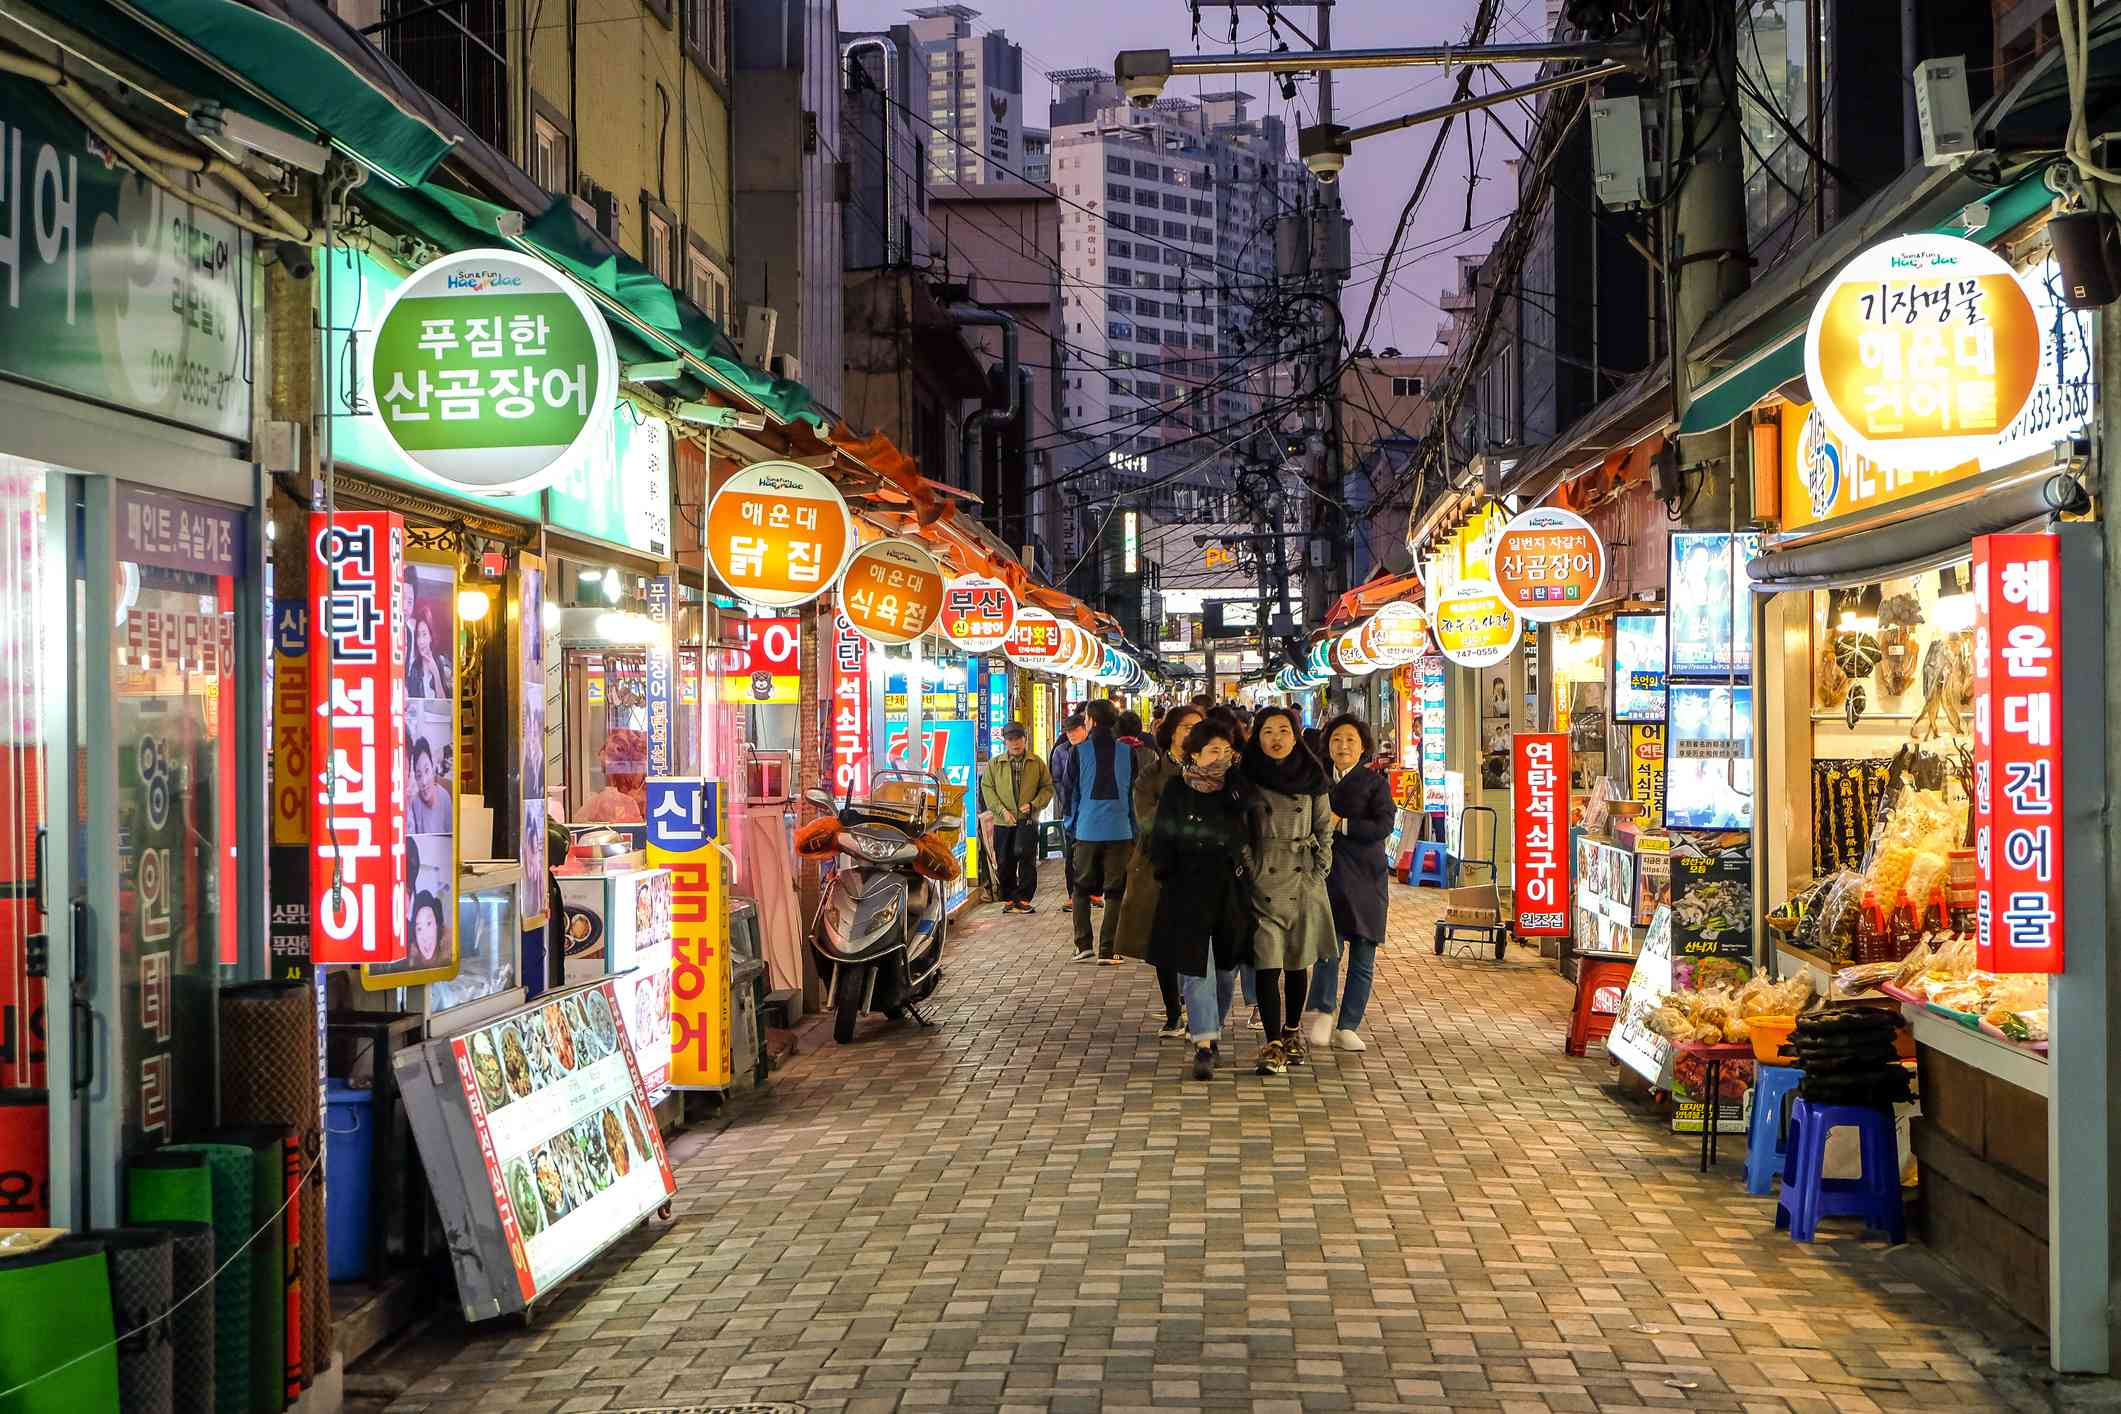 Tourist walking at haeaundae traditional market street with various shops and seafood restaurants